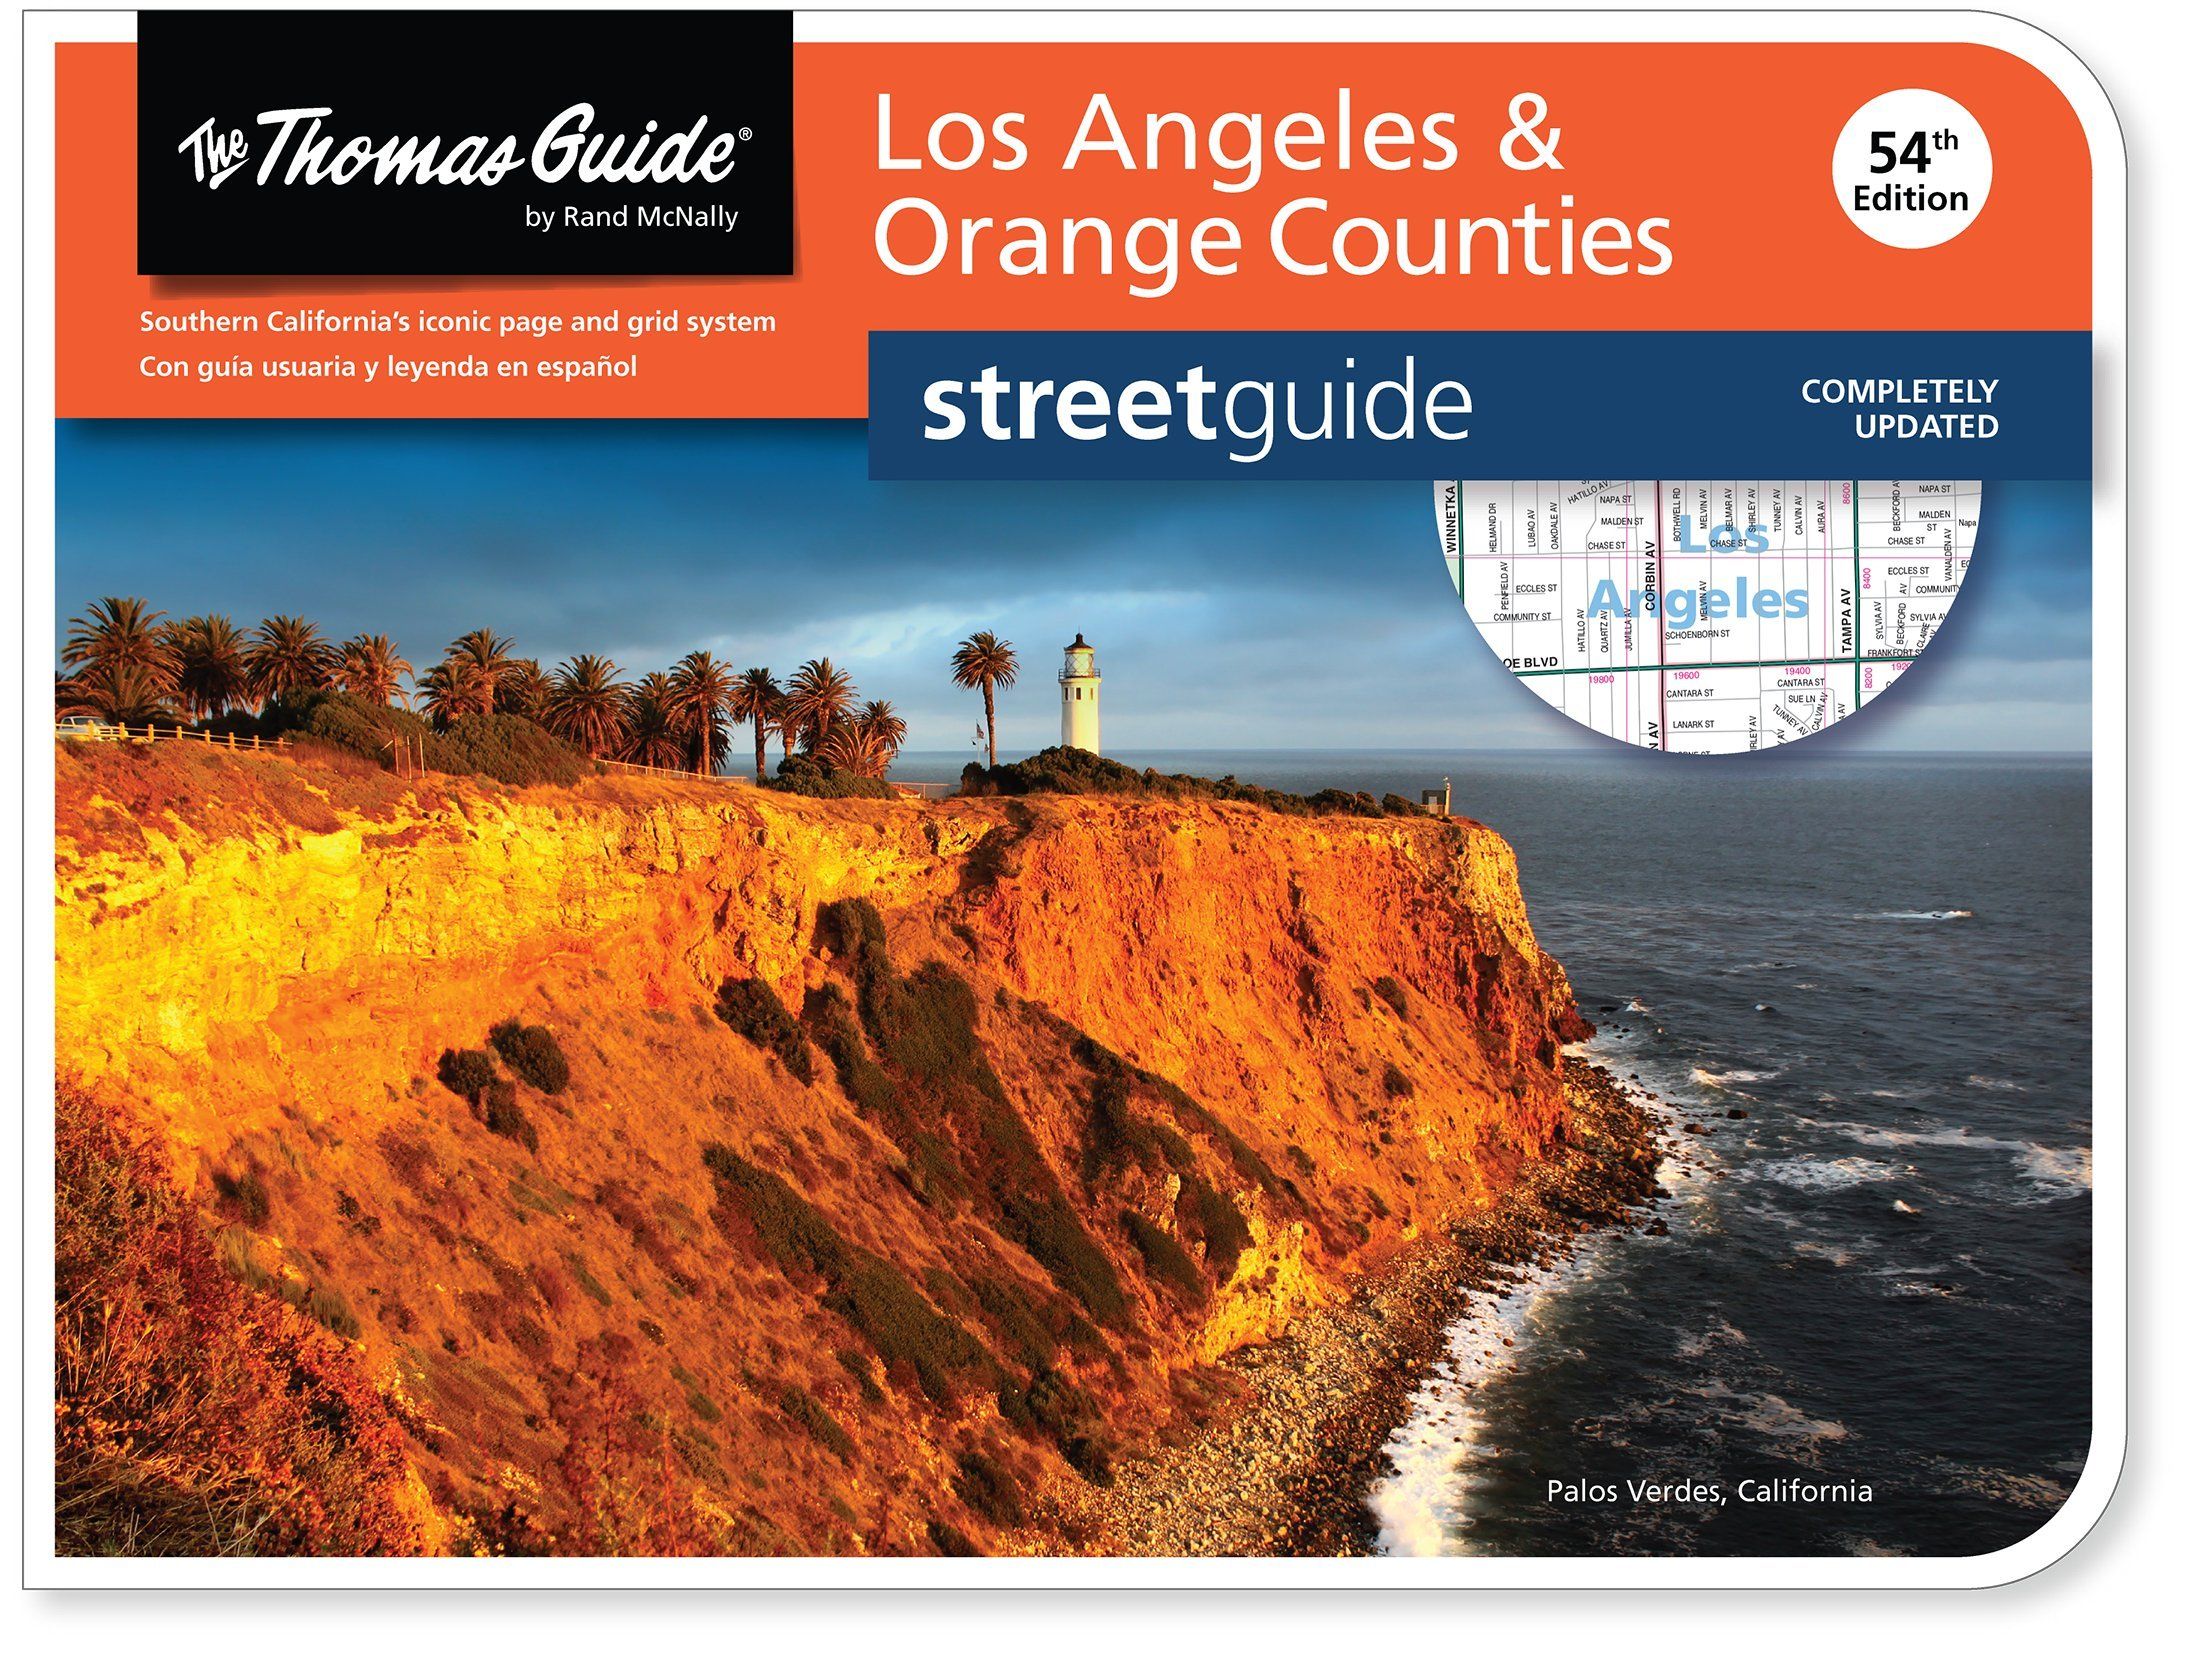 Thomas guide maps: the rise and fall of la's directional holy.